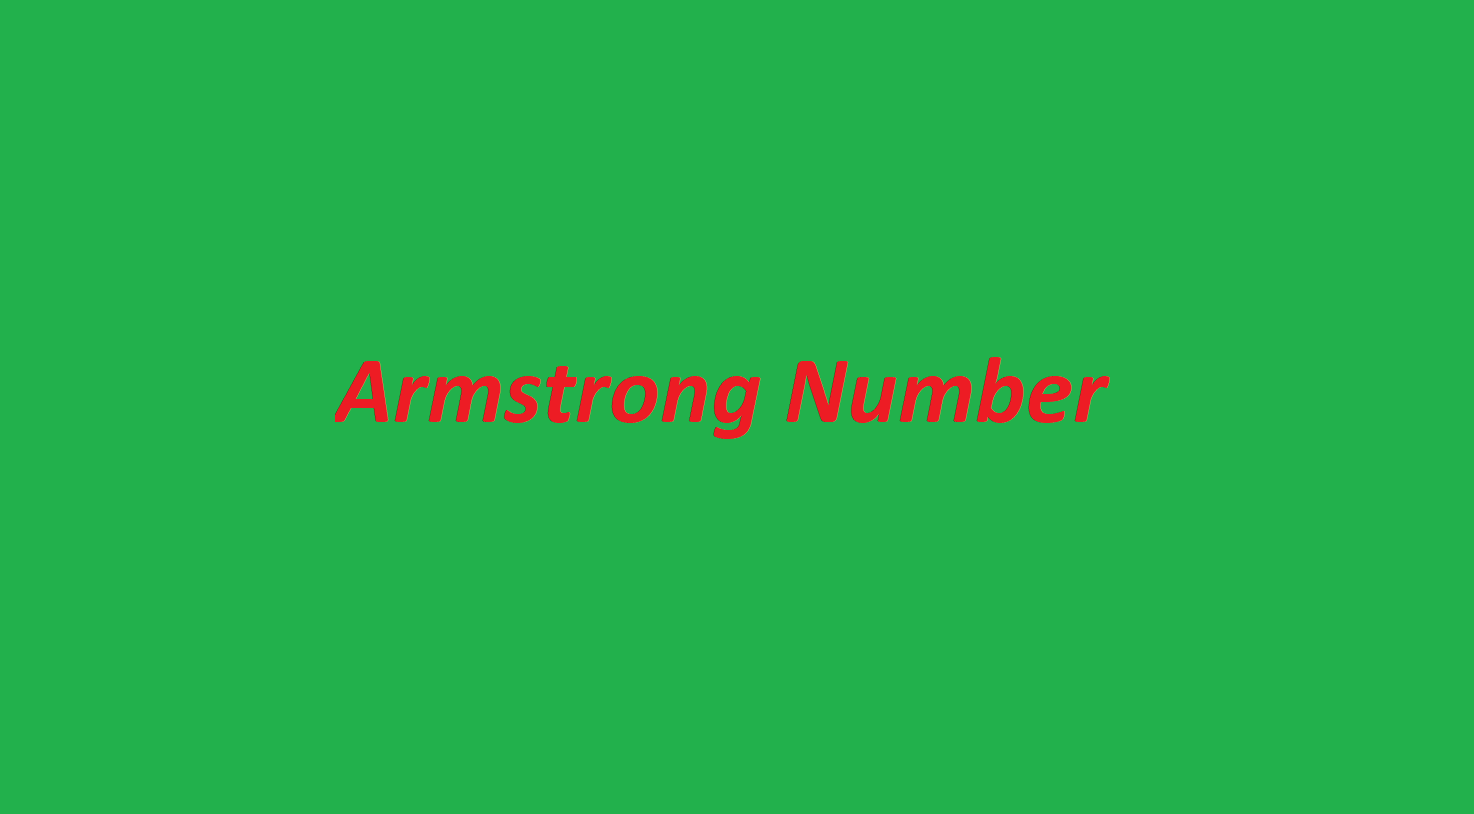 Armstrong Number in C language with Simple and Easy Coding